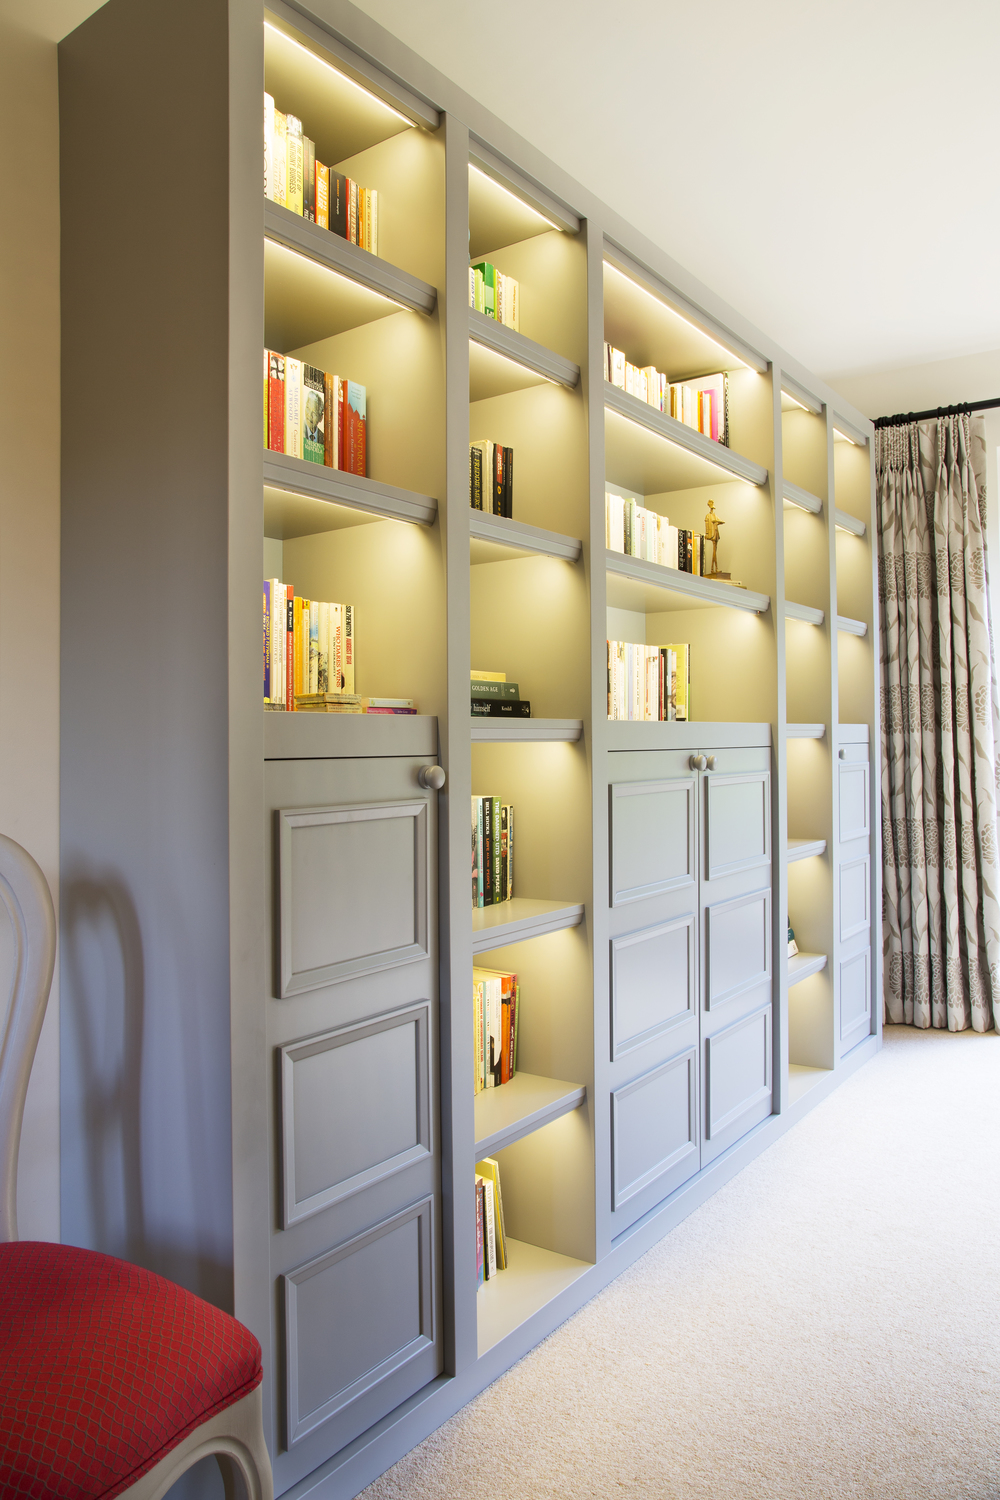 Sevenoaks Dining Room Design by Smartstyle Interiors Bespoke Bookshelf.jpg